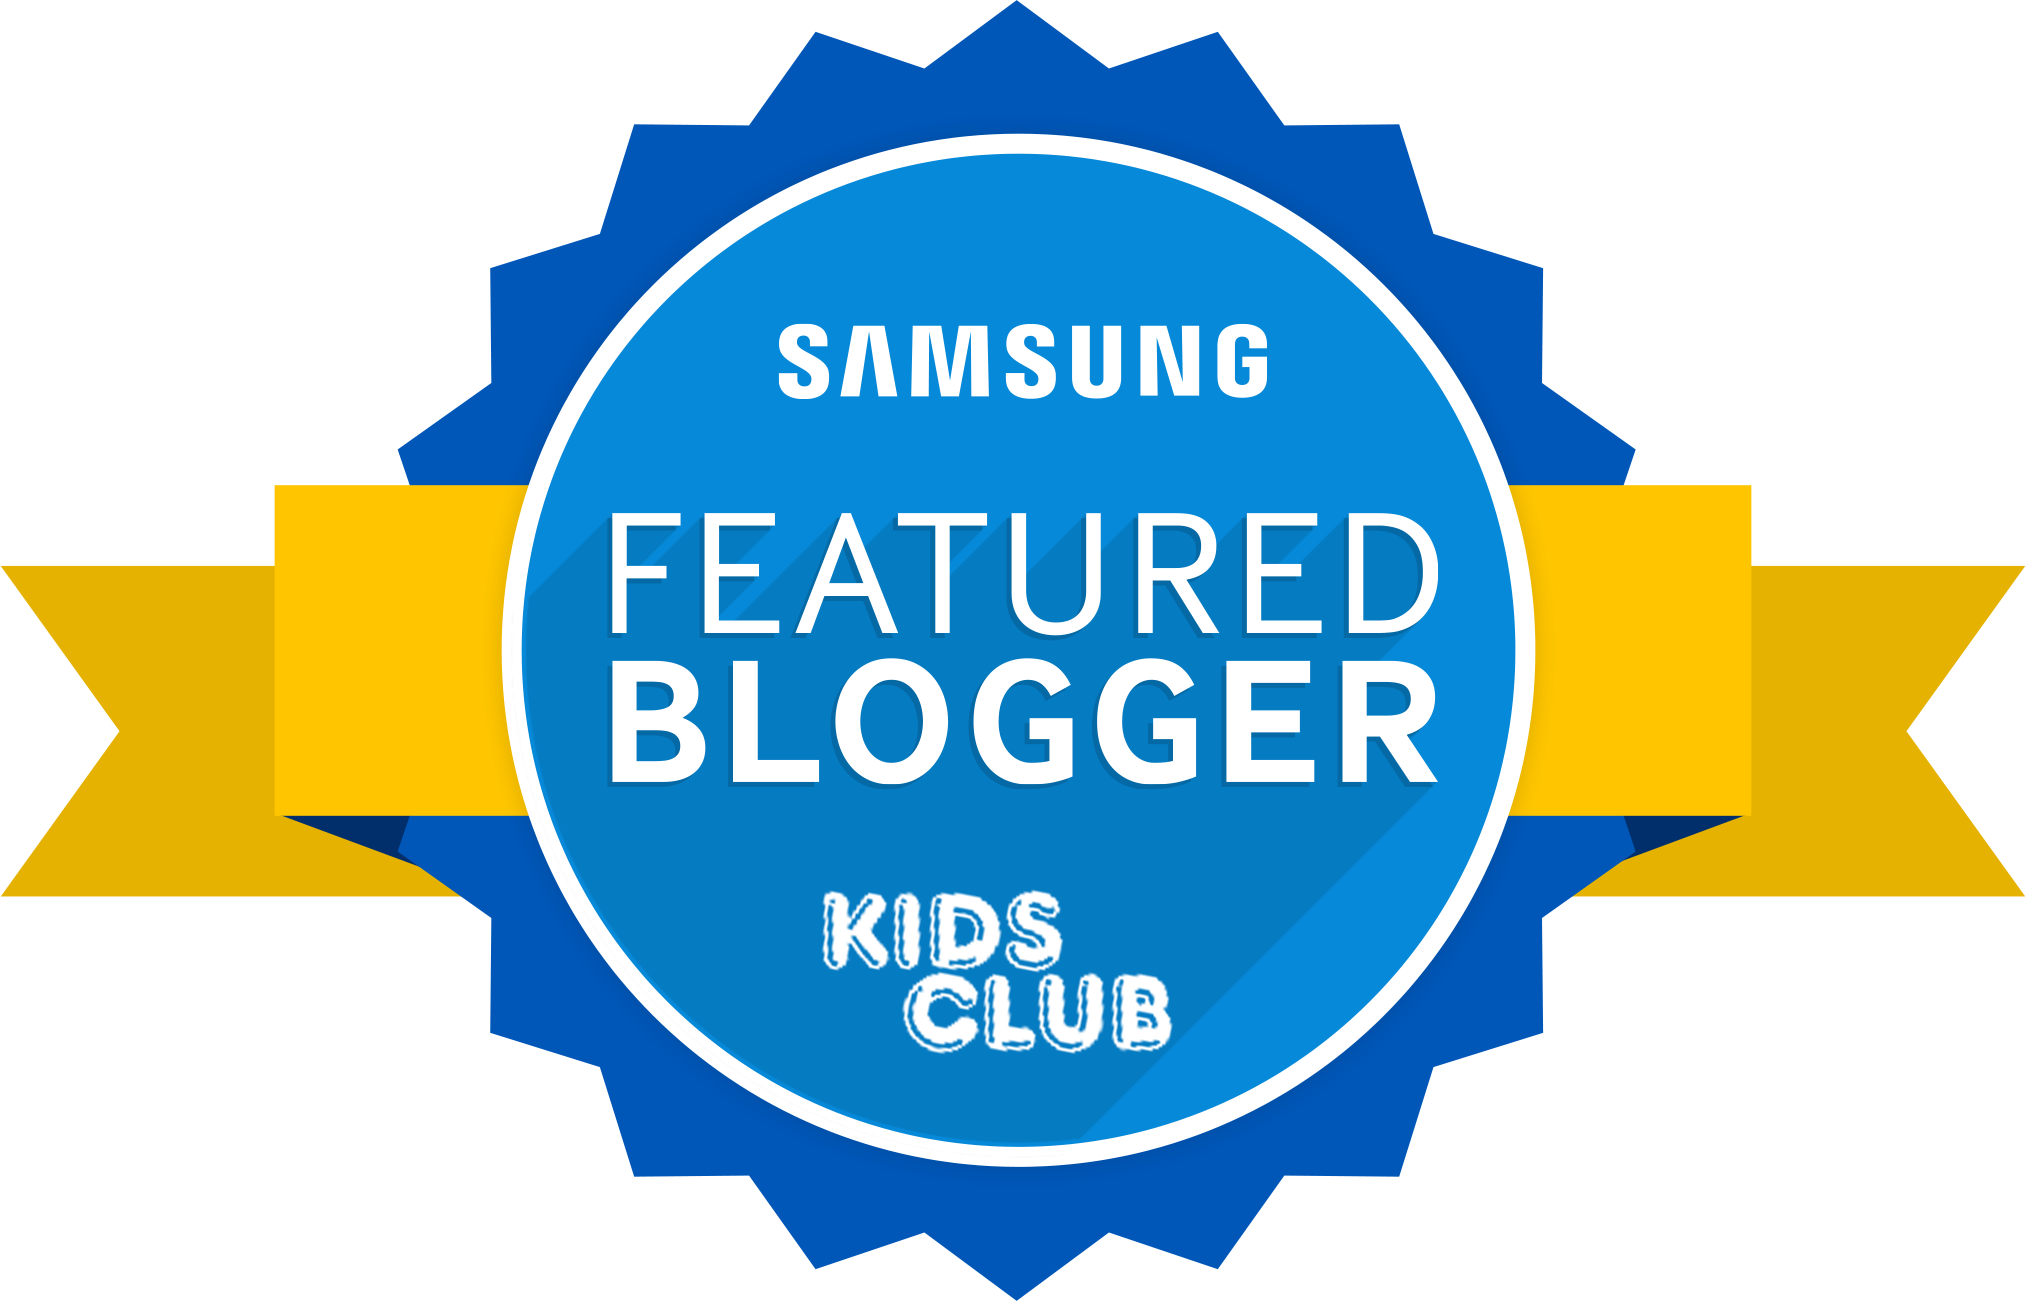 We are Samsung Kids club Blogger – Our journey through the Samsung Smart TV – Part 1